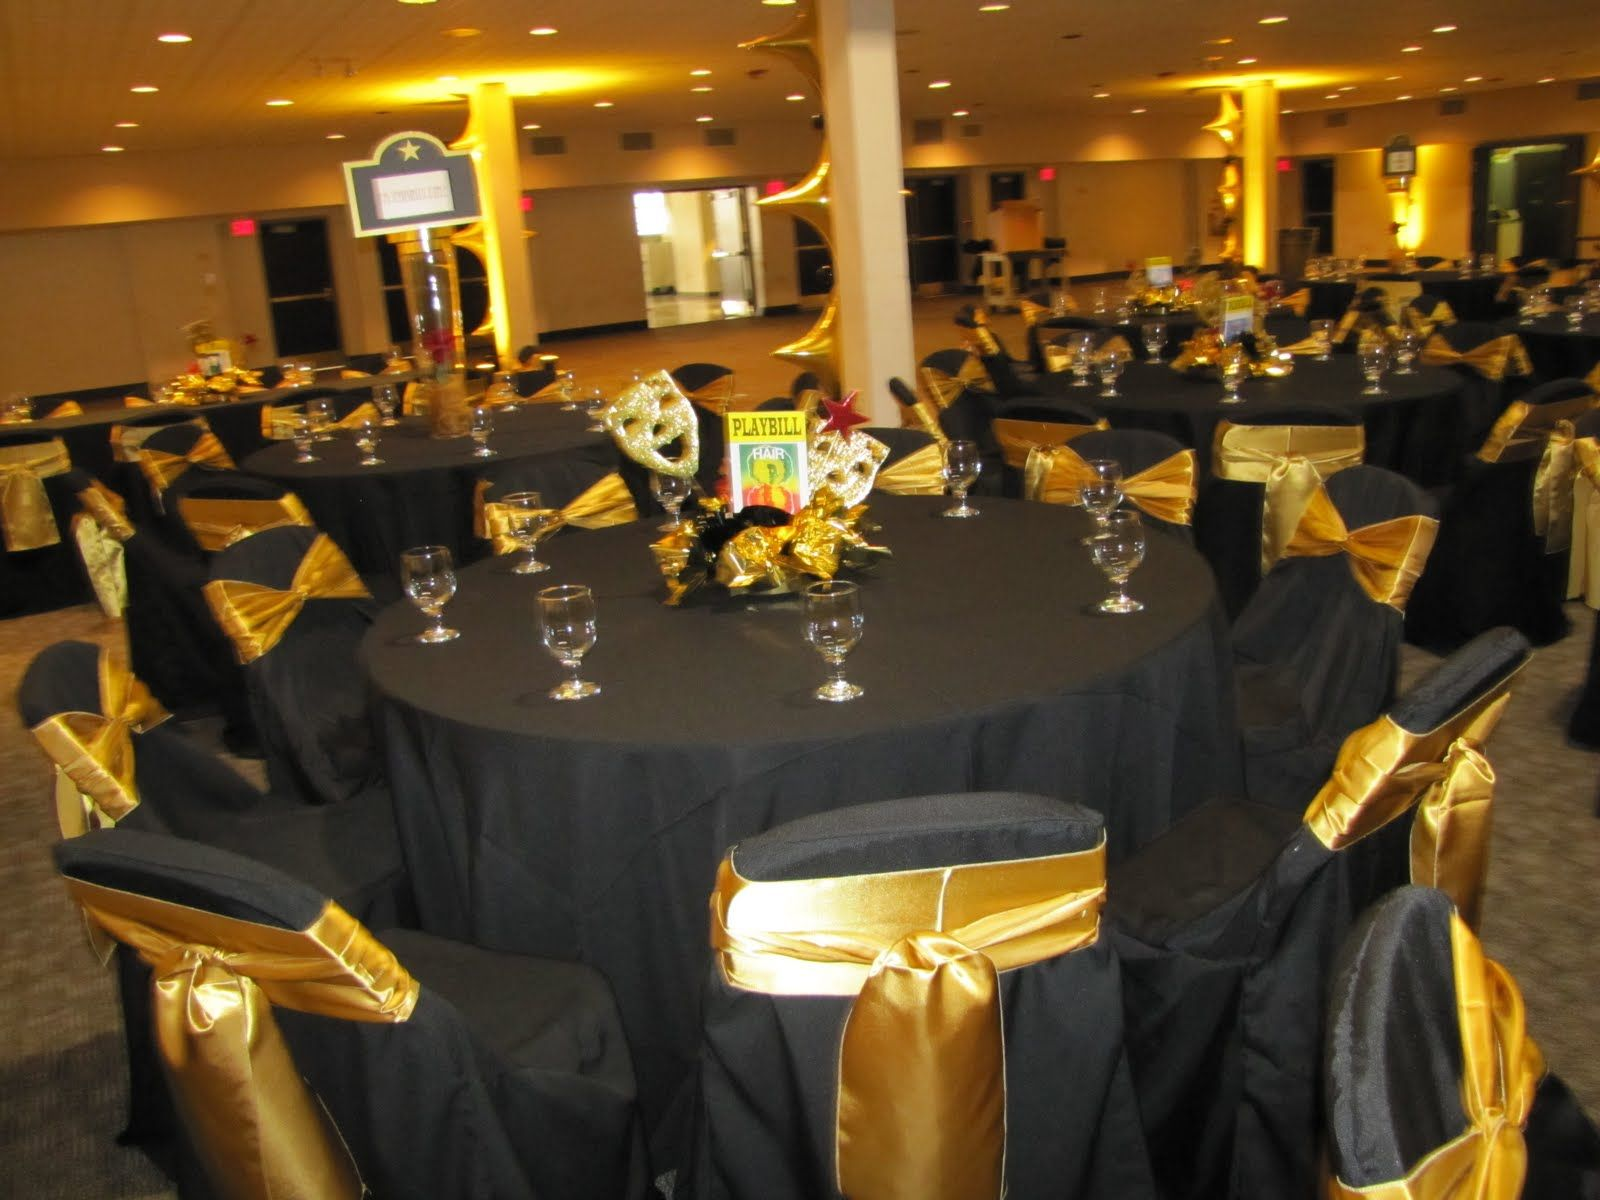 Broadway Themed Awards Banquet 50th Birthday Party Decorations